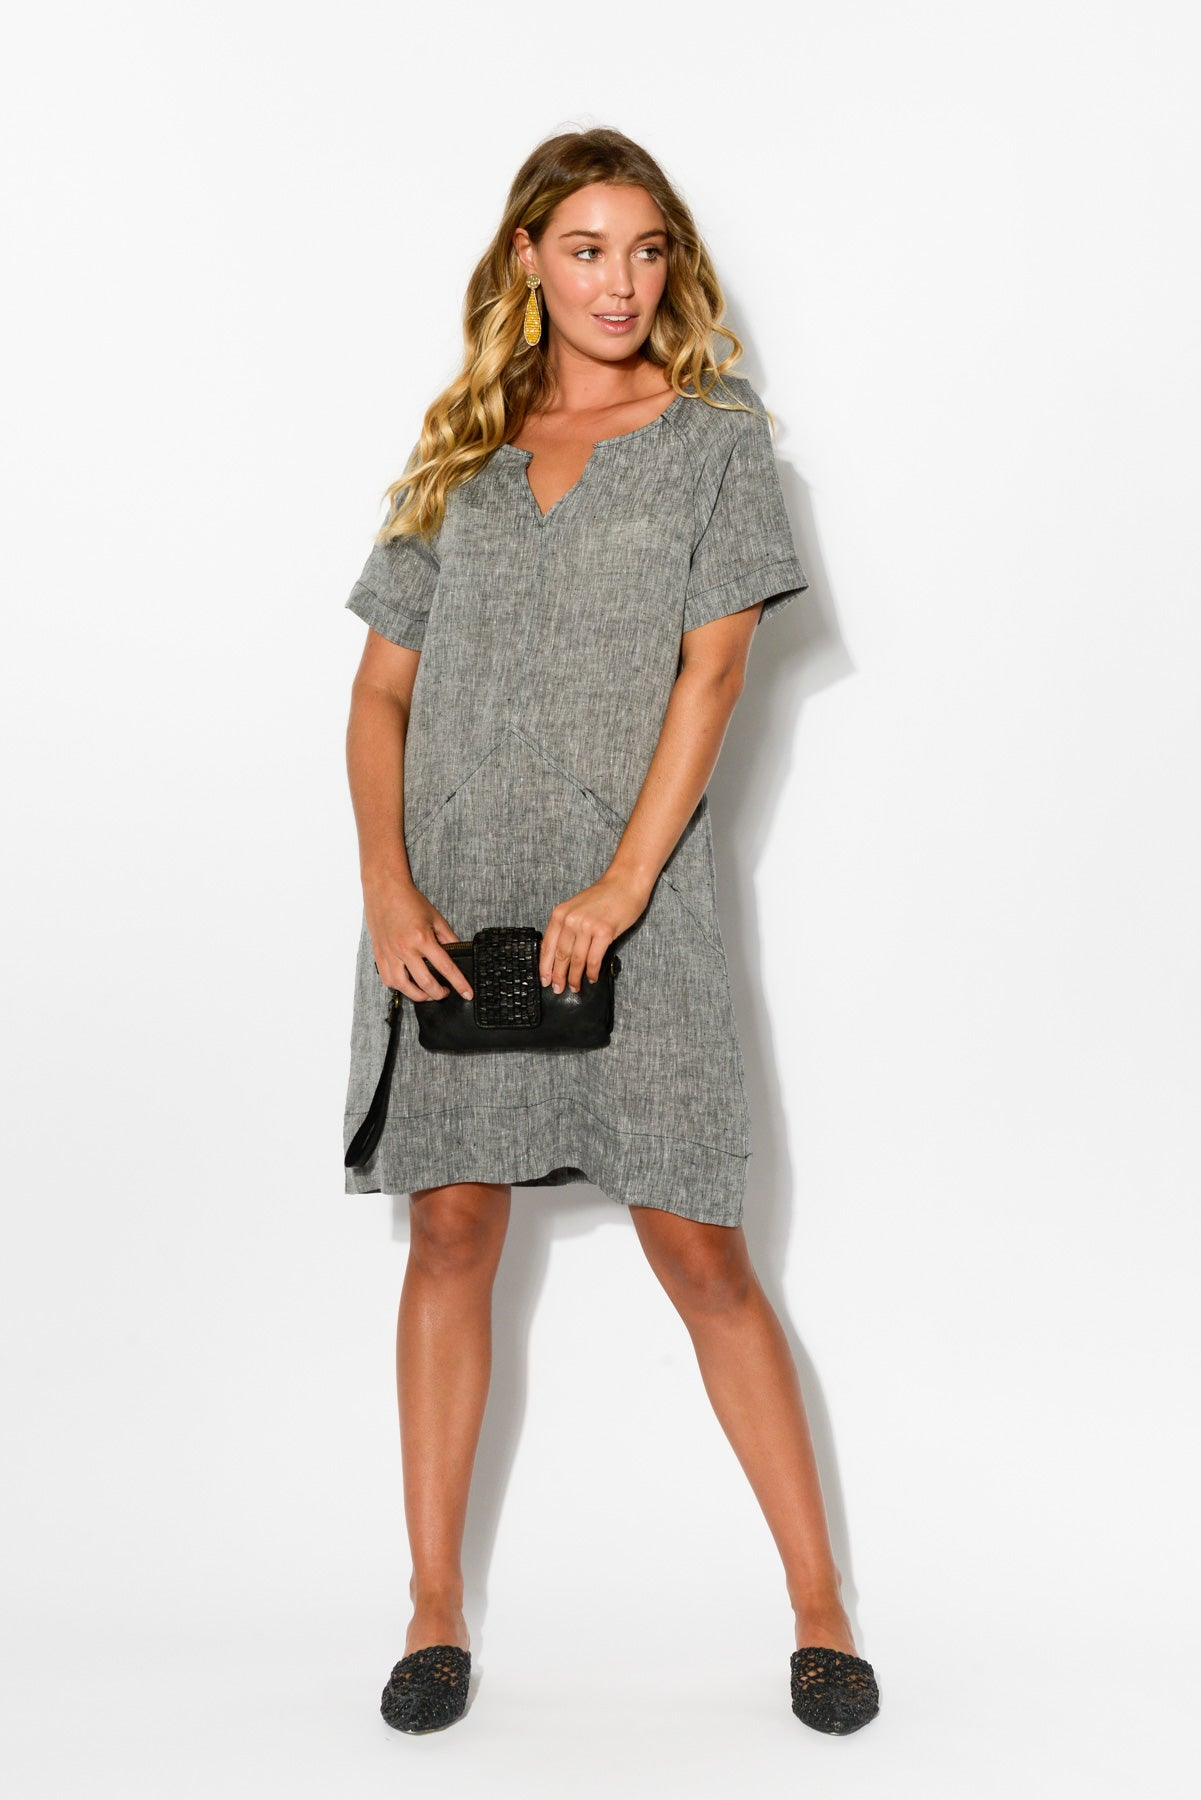 Valerie Grey Linen Dress - Blue Bungalow